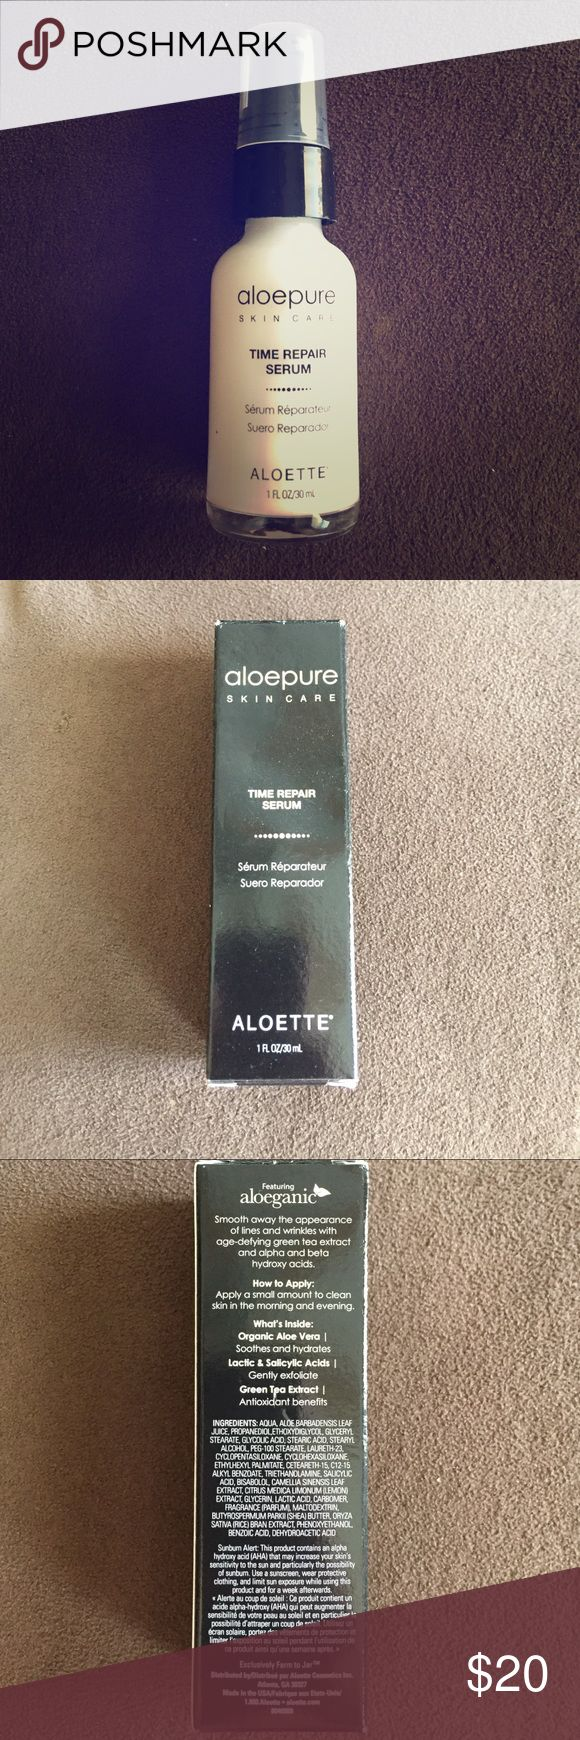 aloepure Time Repair Serum Formulated for all skin types, this non-irritating, lightweight formula absorbs quickly to diminish the appearance of fine lines and wrinkles for a renewed radiance.   ❗️😍☺️ALWAYS OPEN TO OFFERS. PLEASE USE THE OFFER BUTTON TO SUBMIT OFFERS. ☺️😍❗️  💥✨ ALSO DONT FORGET TO TAKE ADVANTAGE OF THE AWESOME BUNDLE DEAS!!!!! ✨💥 aleopure Makeup